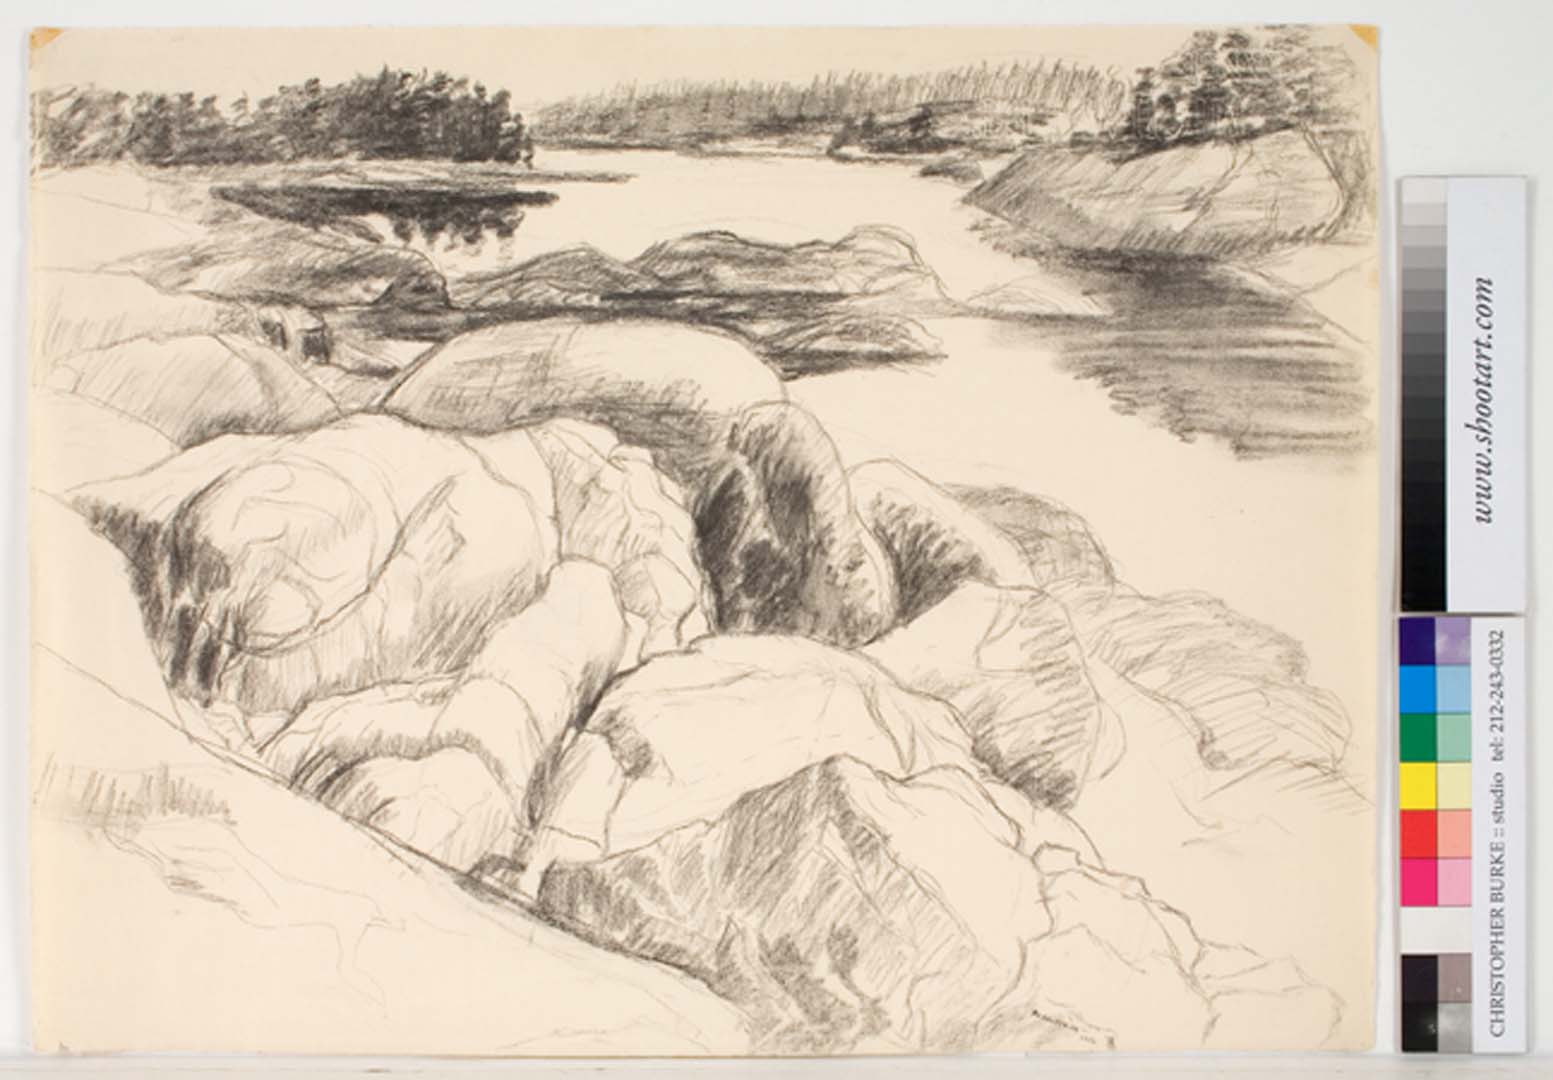 1956 Drawing for Tidal Inlet Charcoal on Paper 18.875 x 24.75